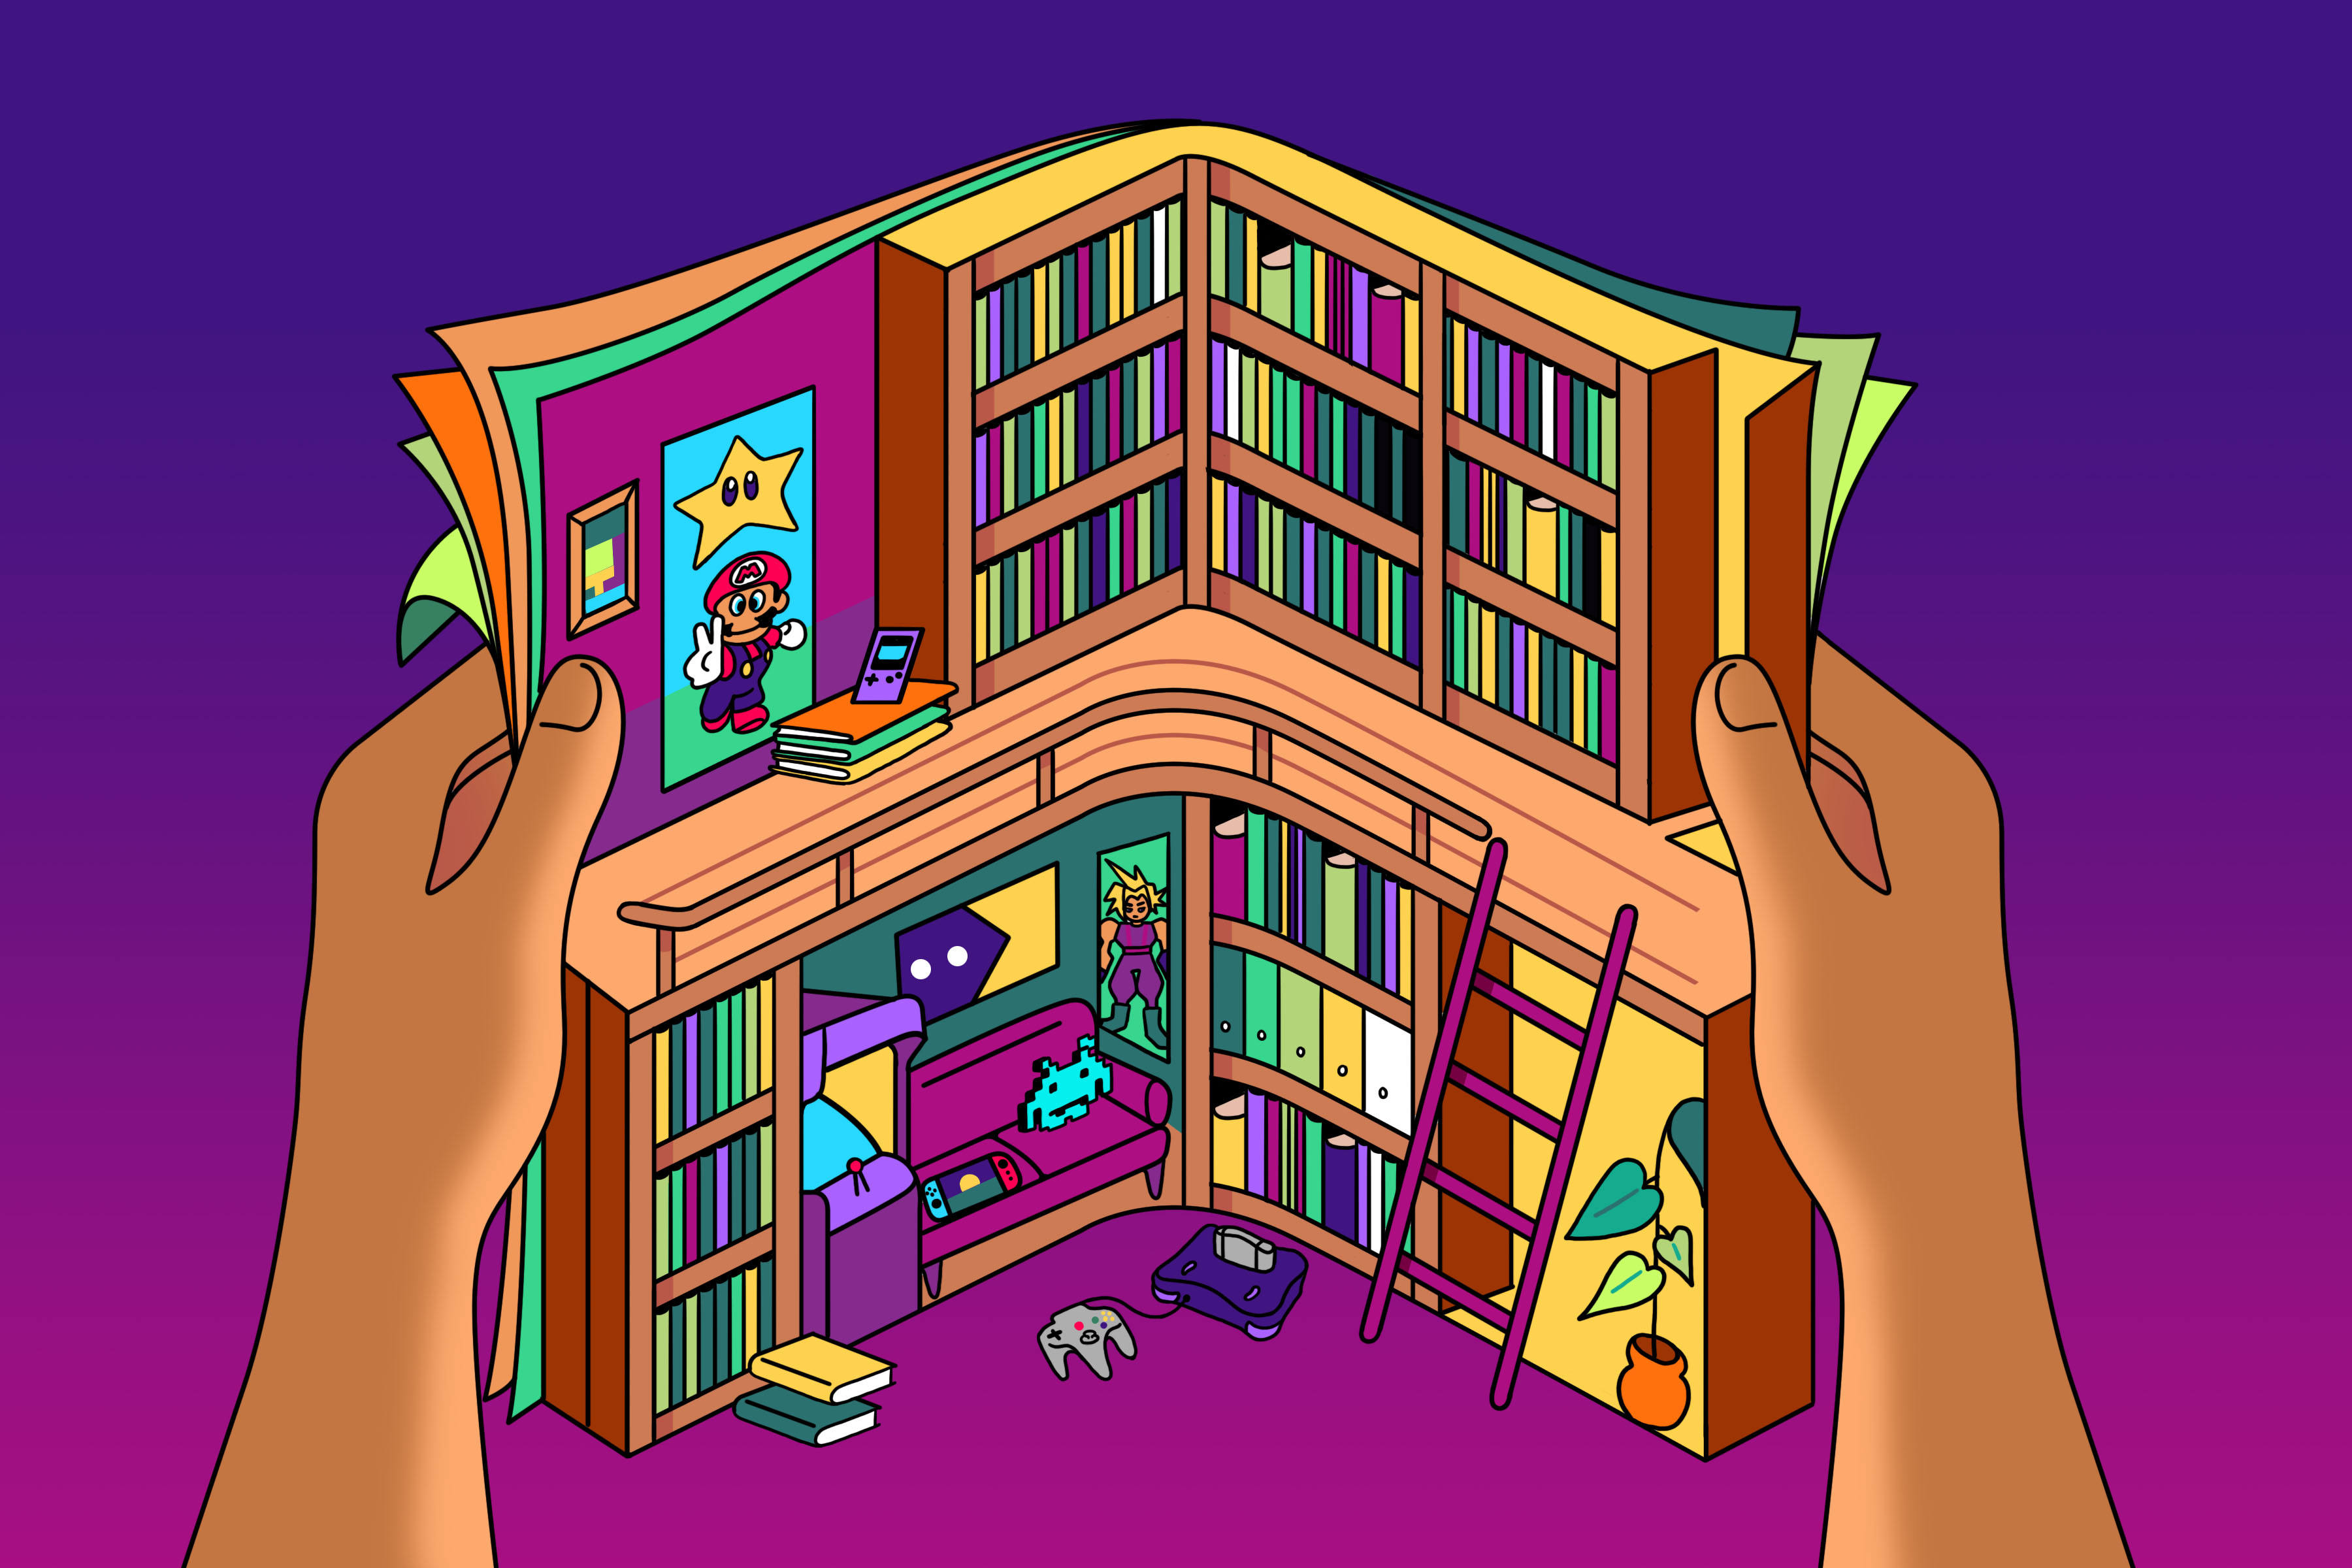 Illustration of two hands holding an open magazine with a library inside